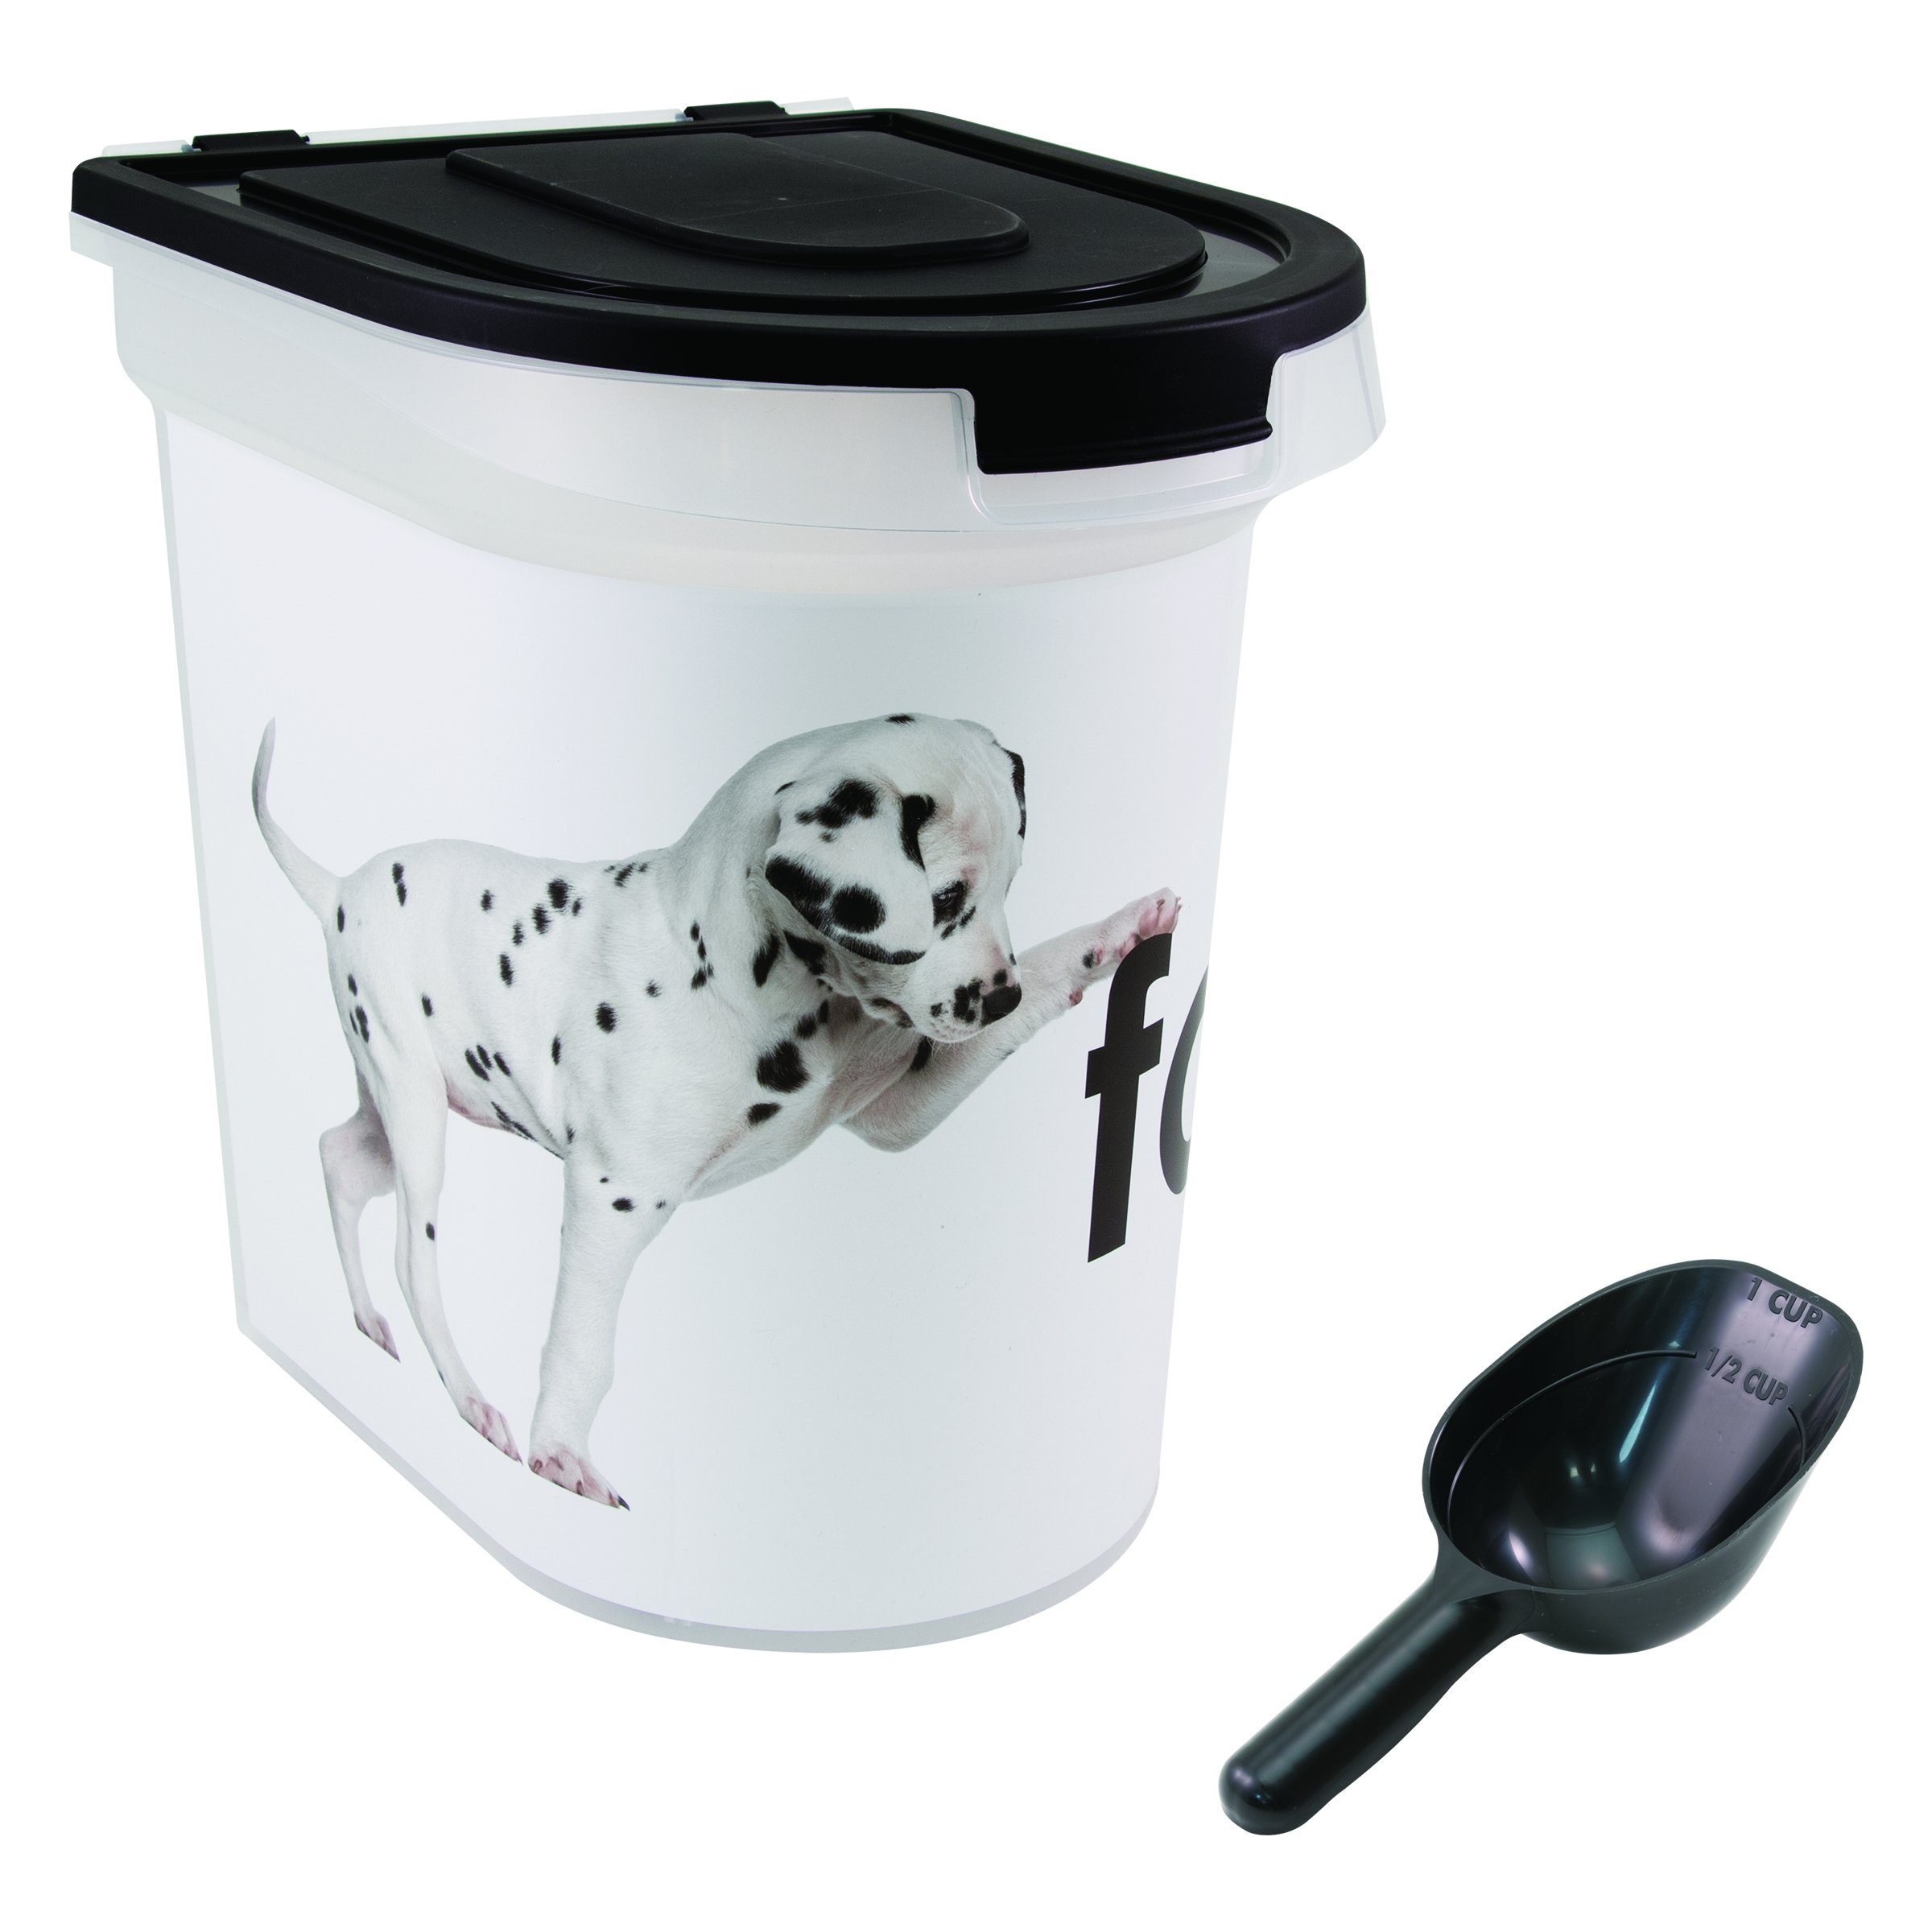 Paw Prints 26 Pound Plastic Rolling Pet Food Bin, Dalmatian Design, Includes Measured Scoop, 15.5 x 16.75 x 13.25 Inches (37583)